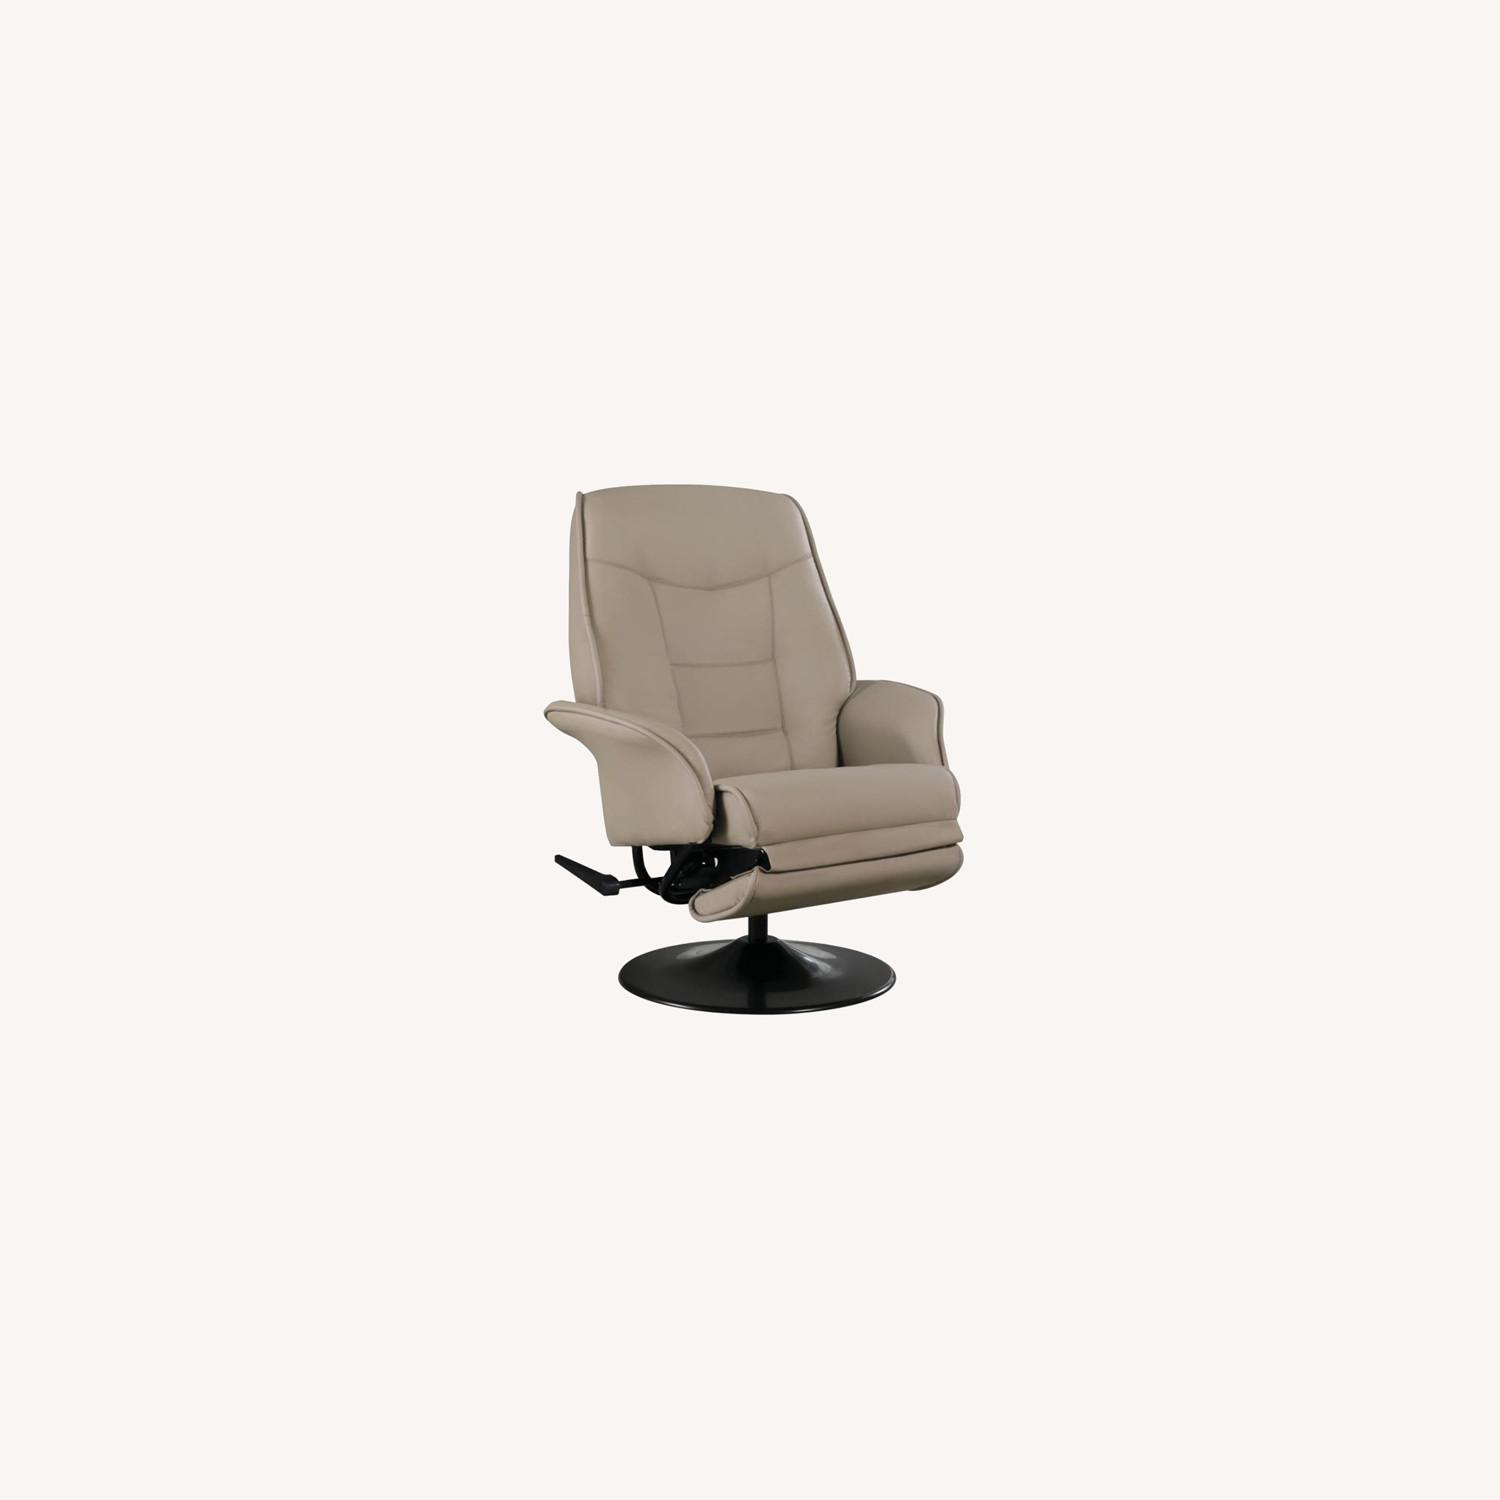 Swivel Recliner In Classic Beige Leatherette - image-8